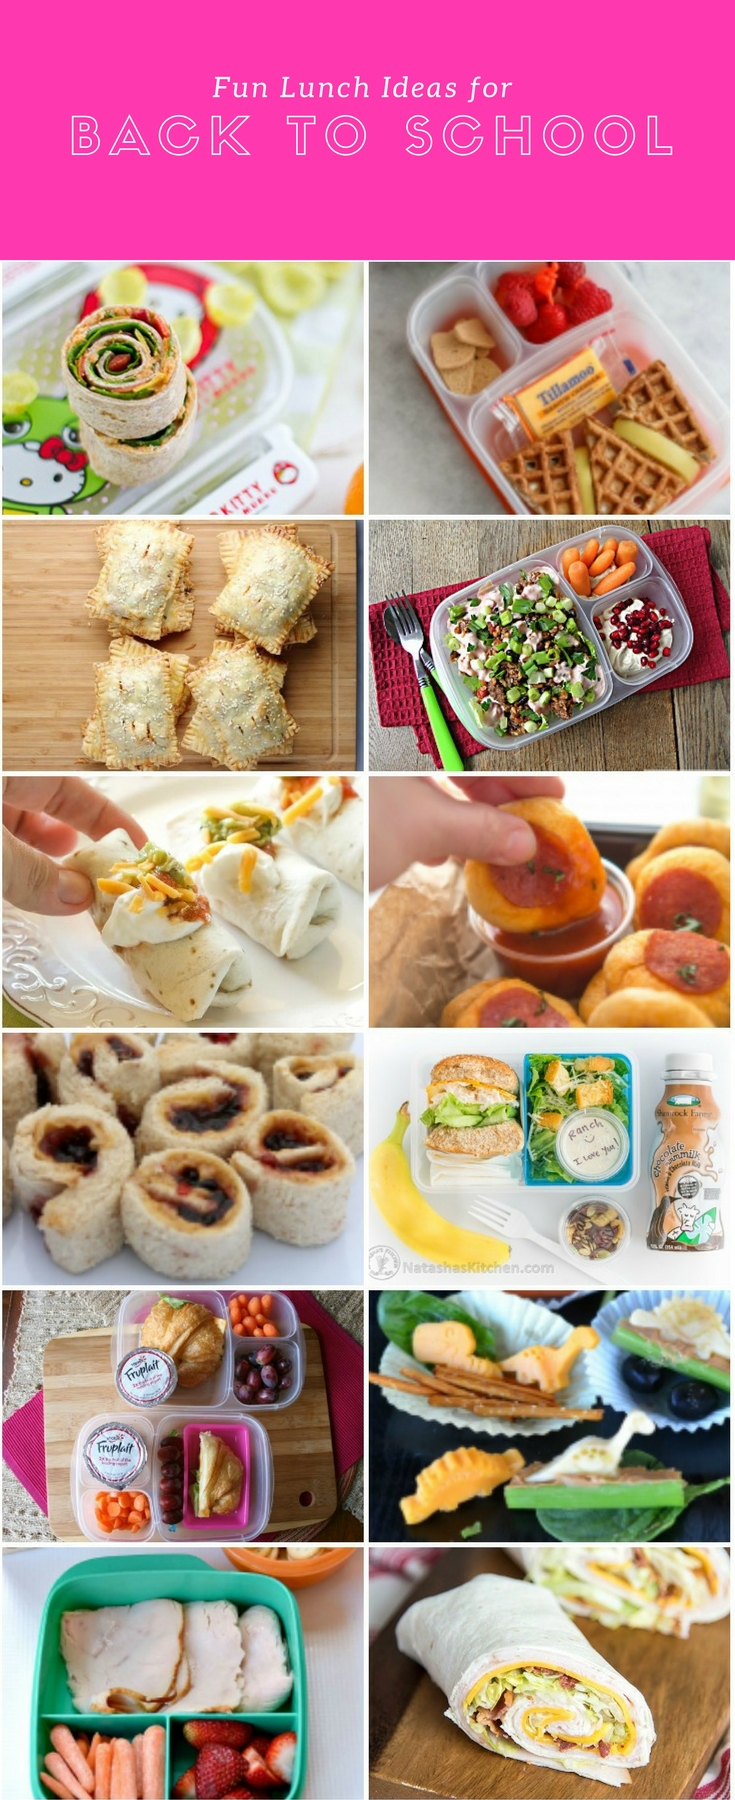 Fun Lunch Ideas for Back to School | A roundup of delicious, non-boring recipes to make your little one's lunch boxes more exciting this school year! Read more at blog.cuteheads.com